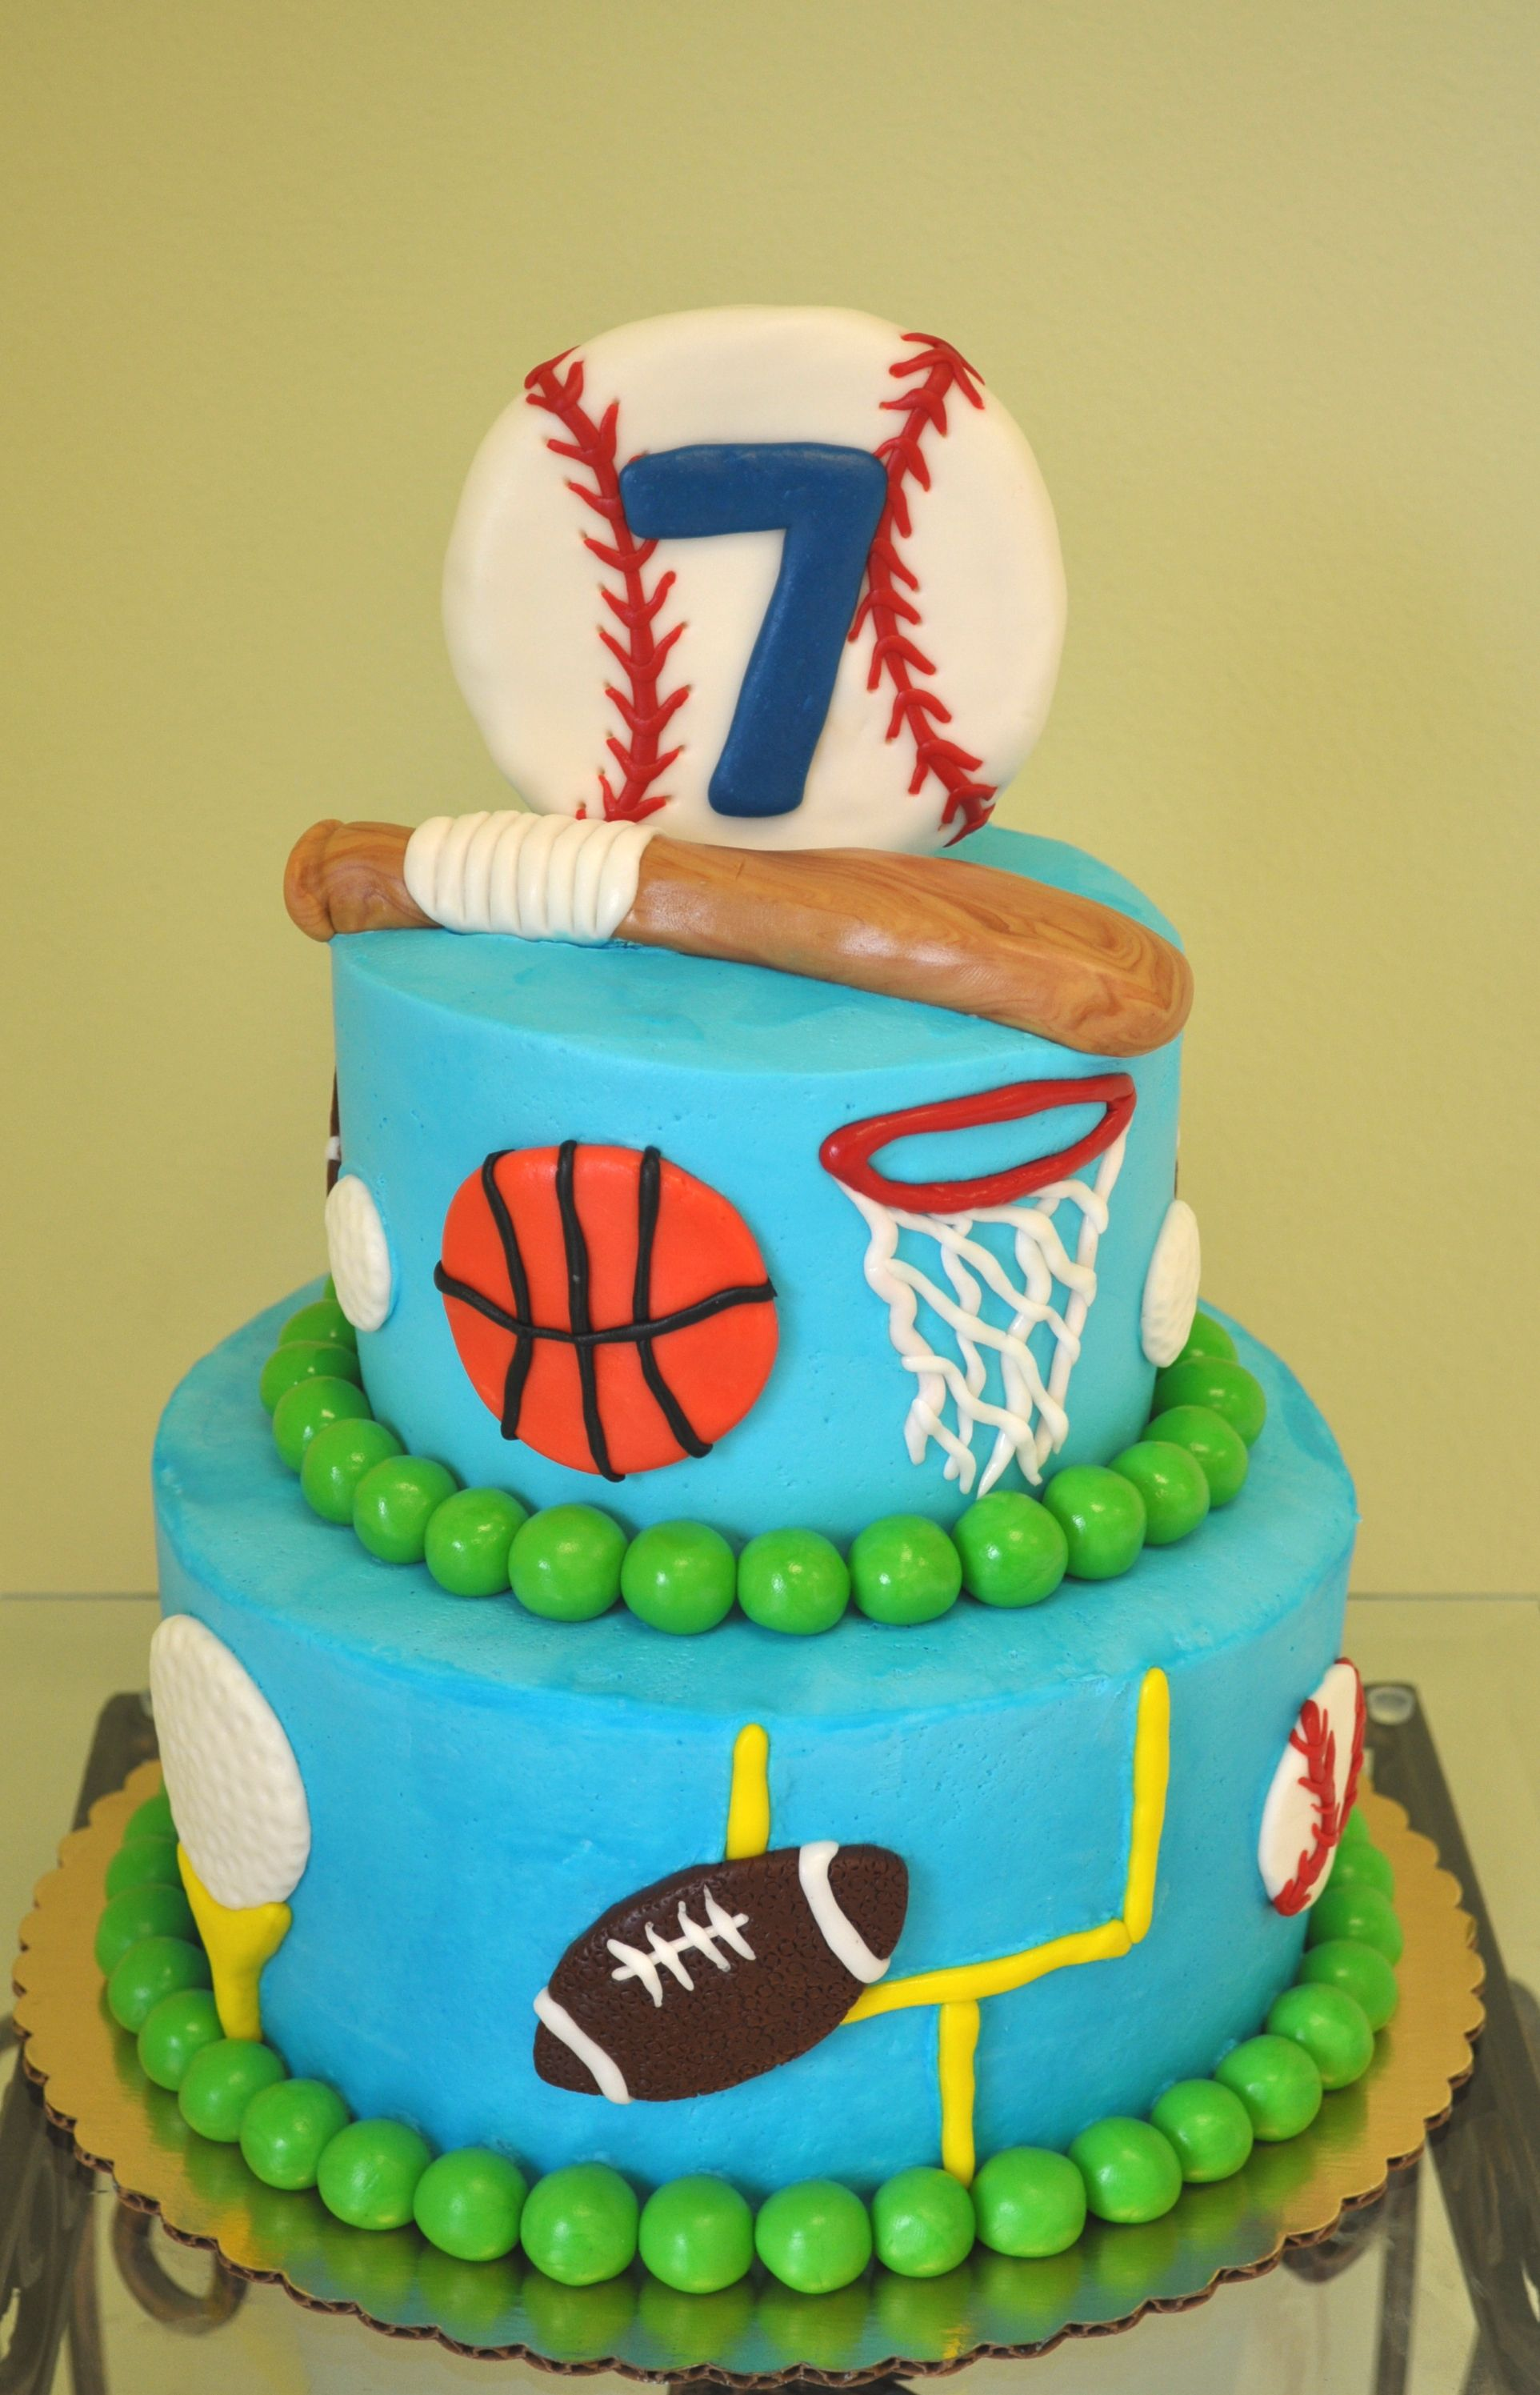 Great Cake Idea For Your Sports Lover